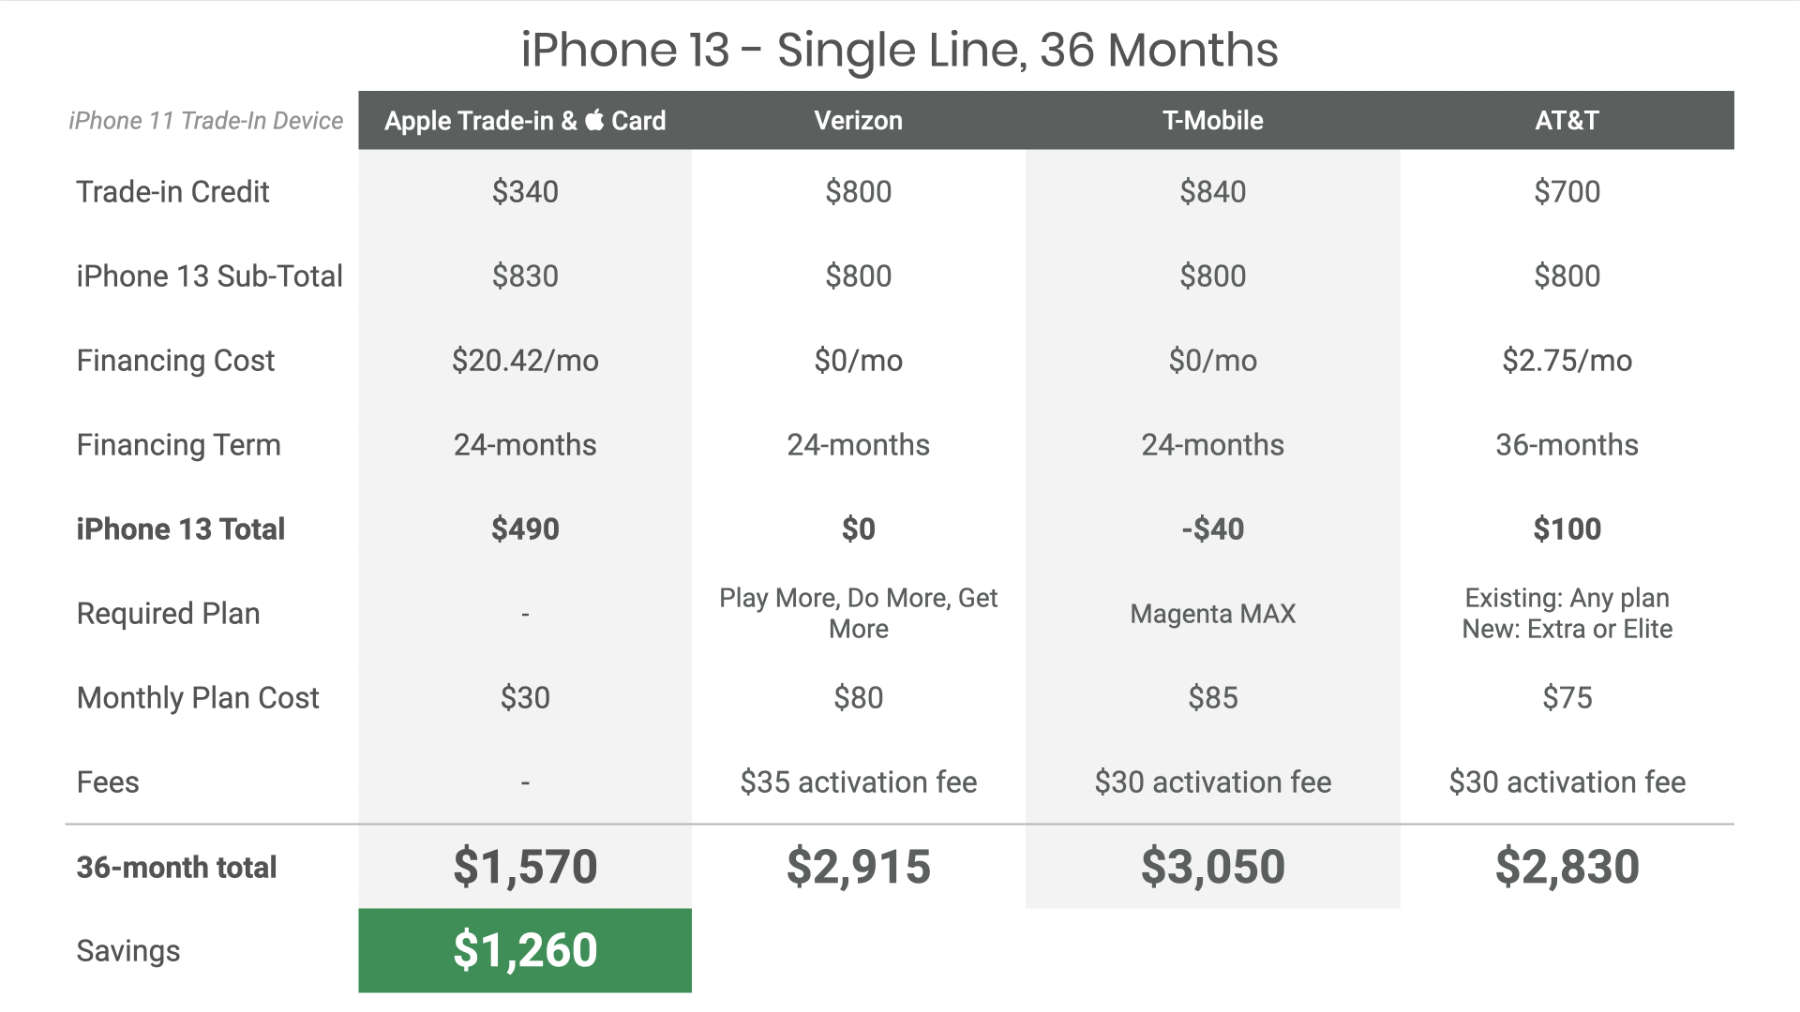 Verizon versus T-Mobile versus AT&T iPhone 13 cost comparison for single line over 24 months